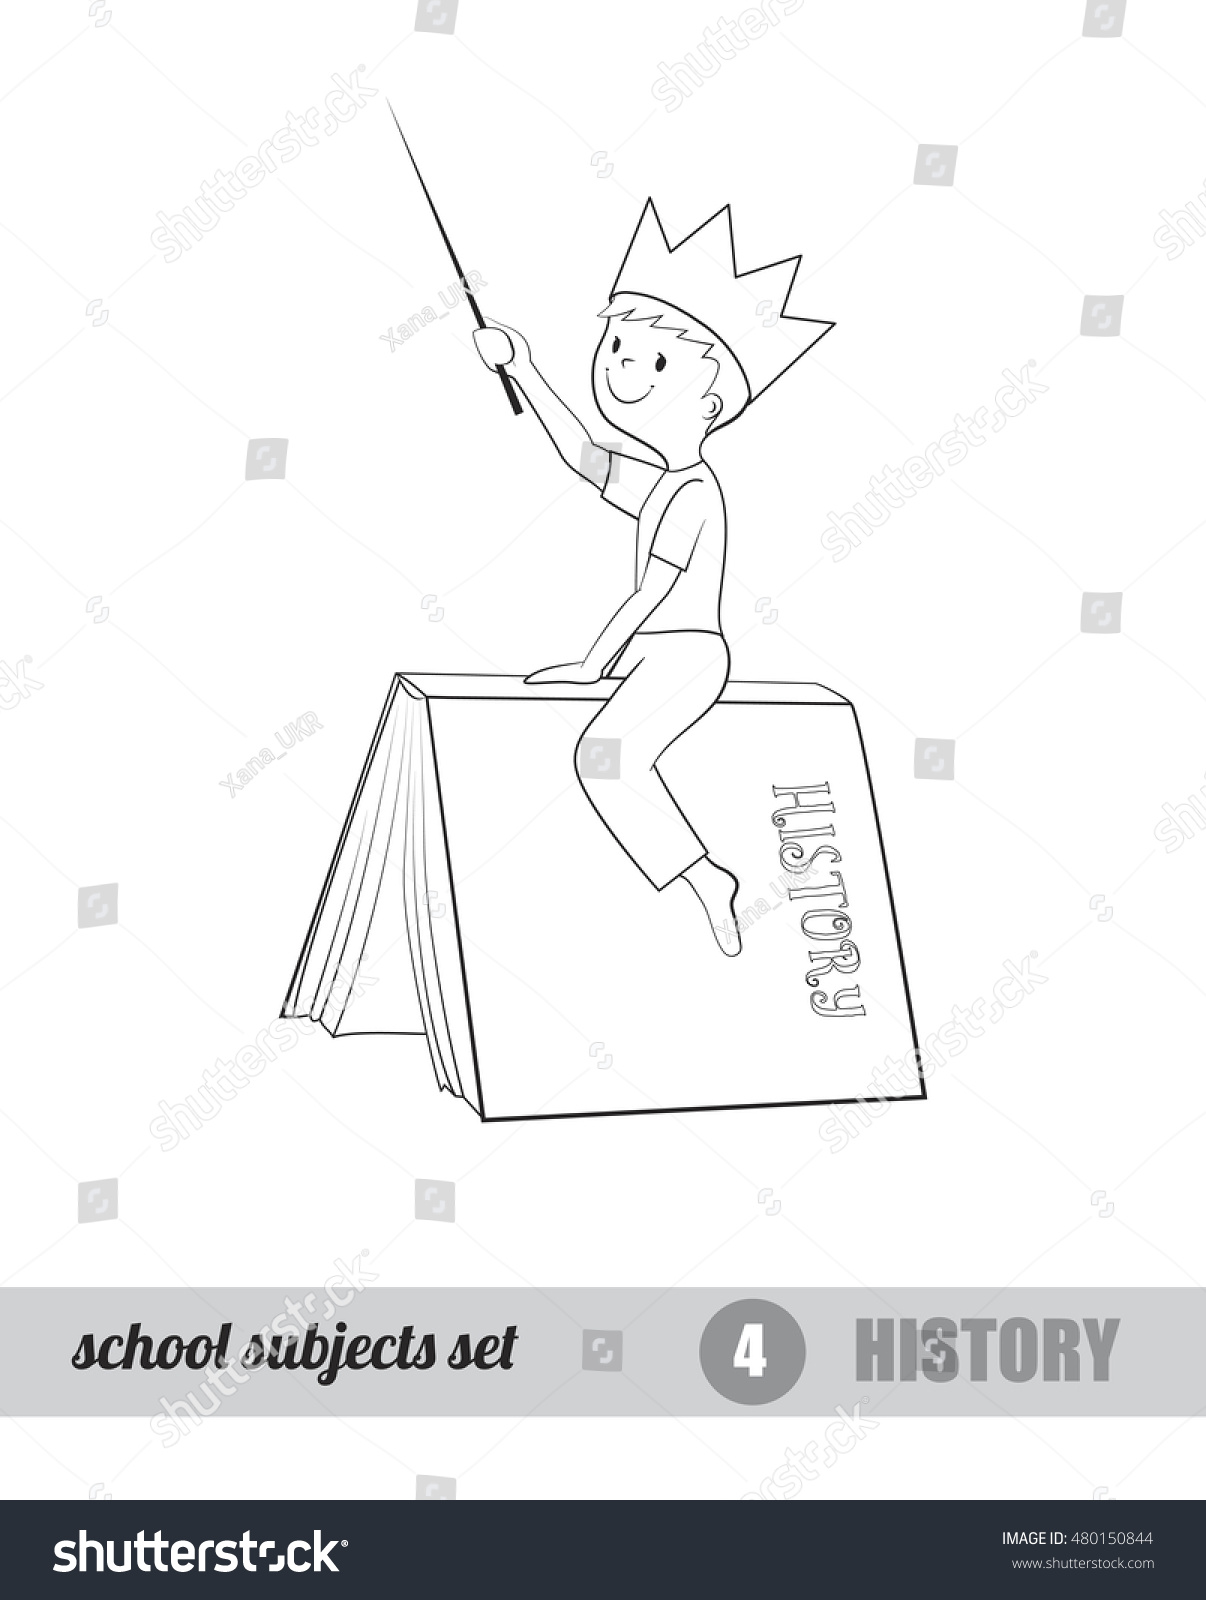 One School Subject Set History Vector Stock Vector (Royalty Free ...